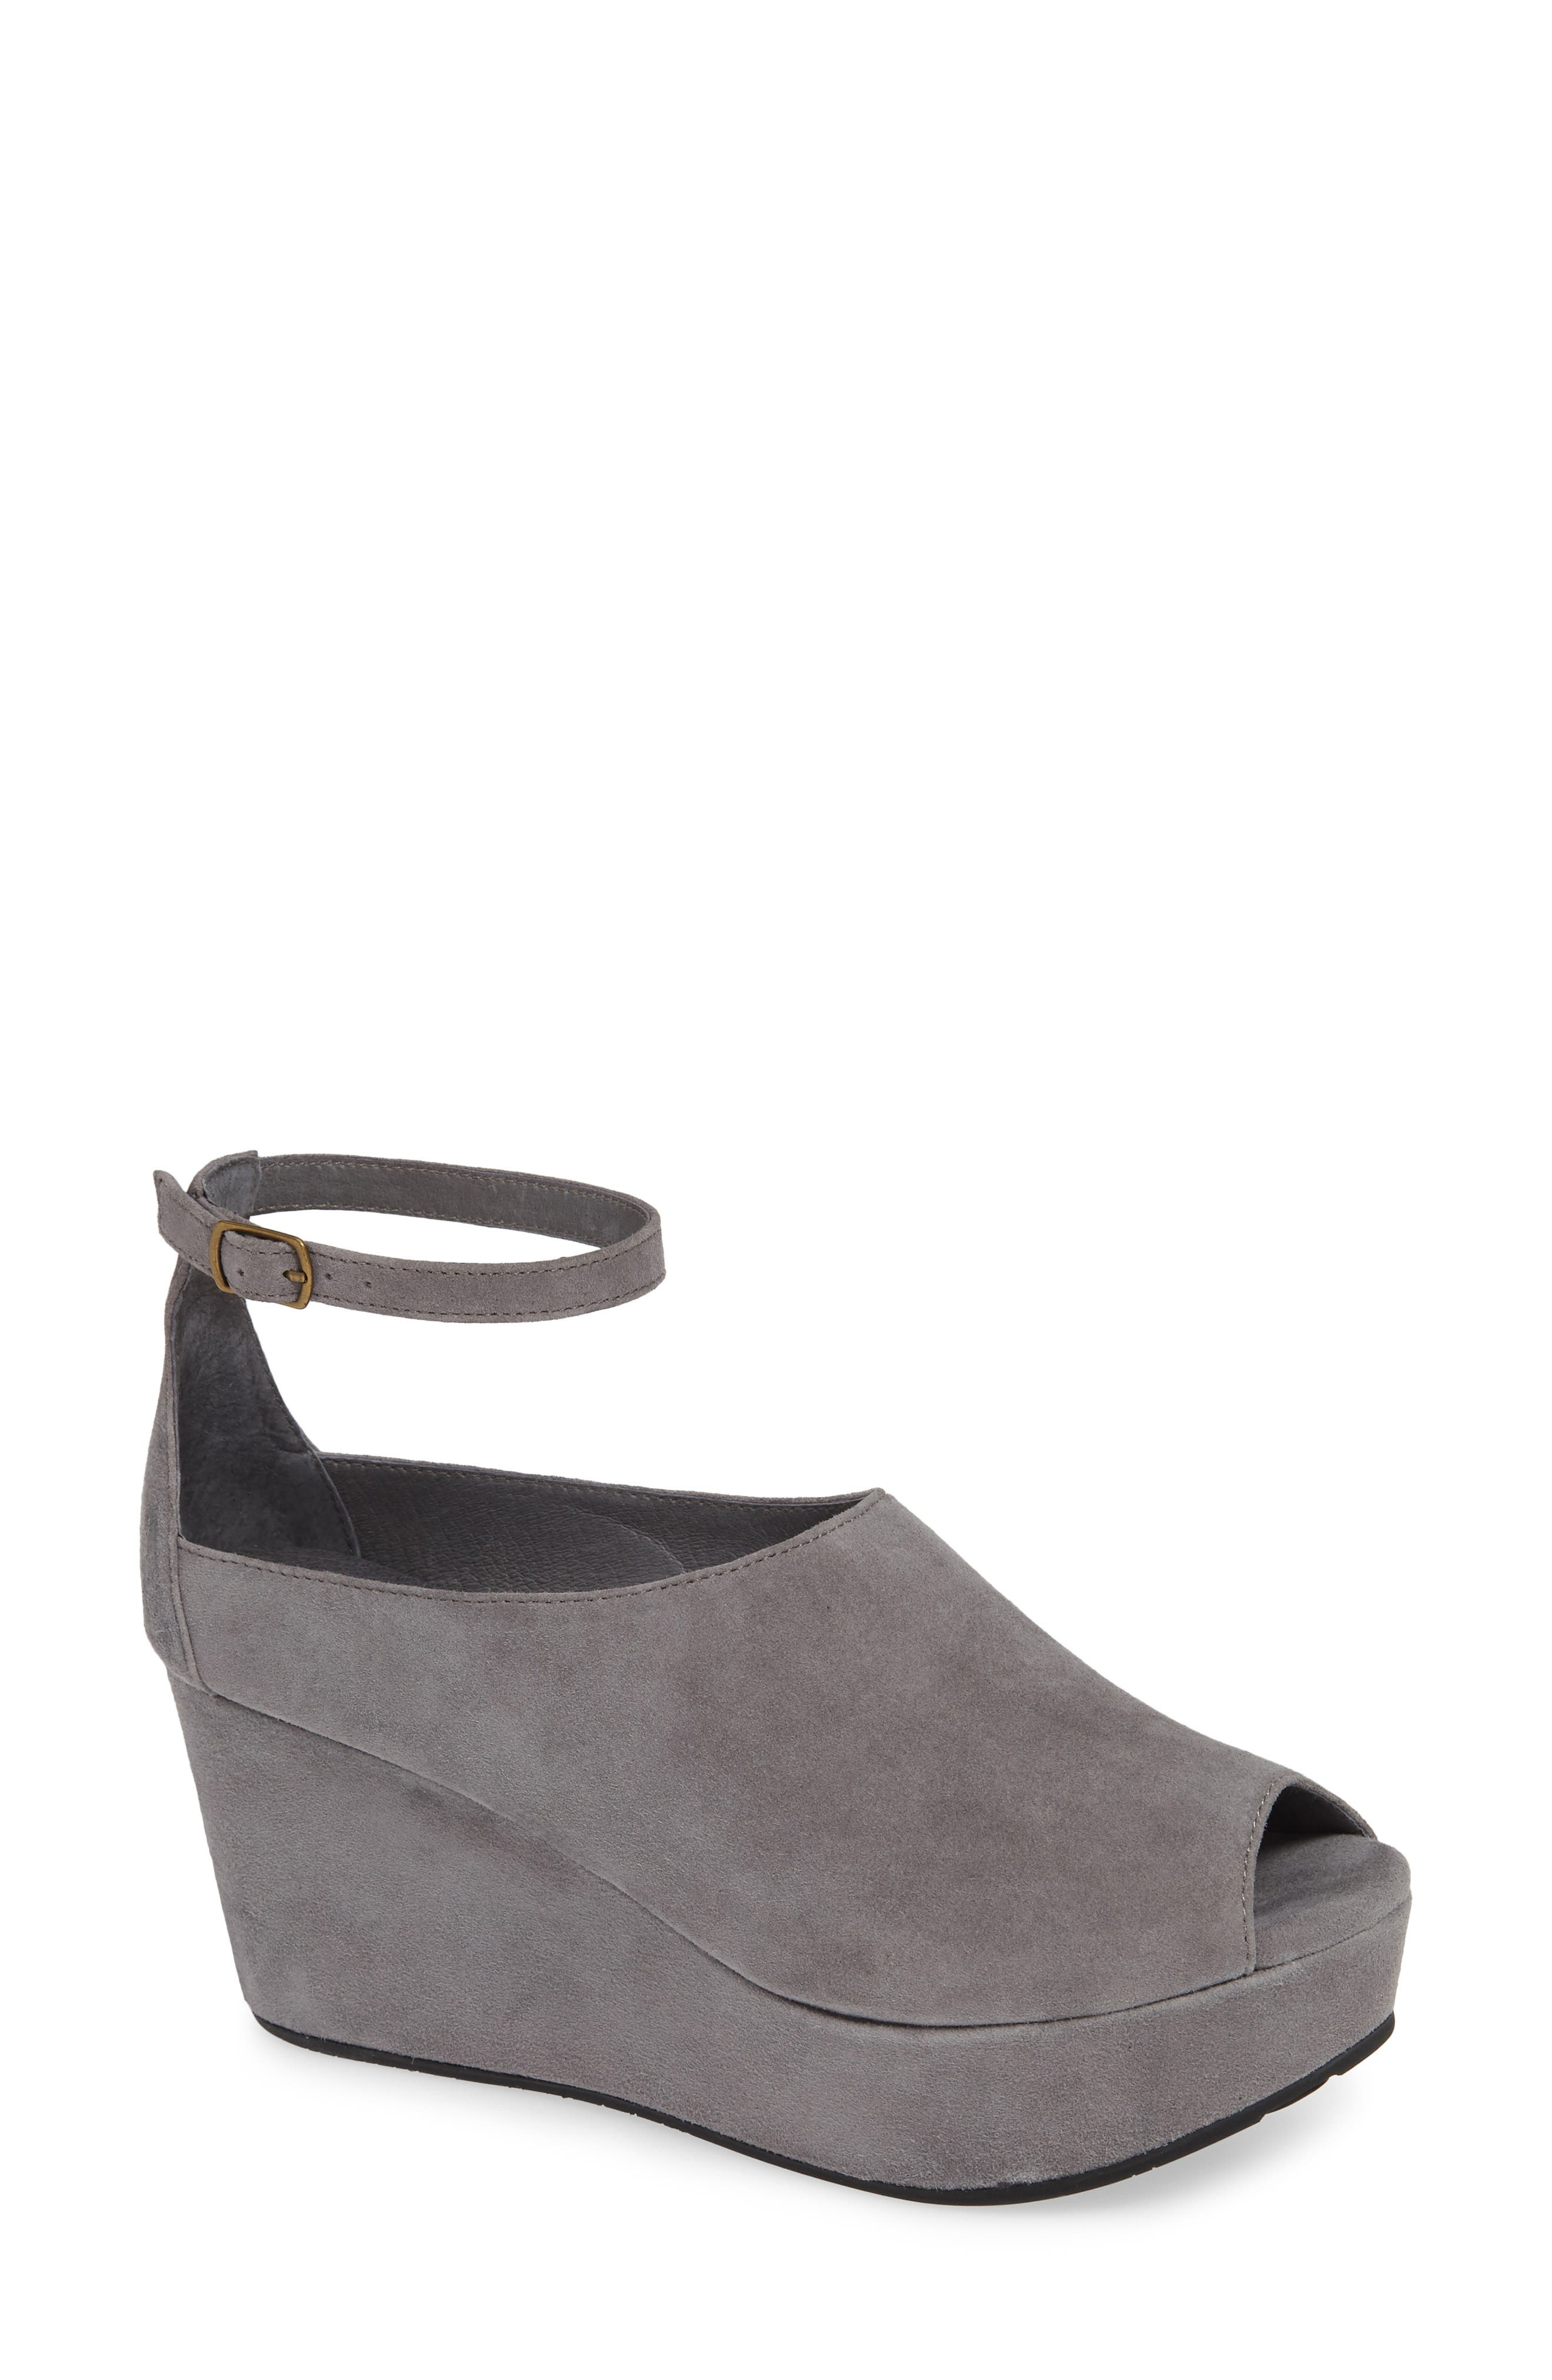 Walter Ankle Strap Wedge Sandal,                         Main,                         color, GREY SUEDE